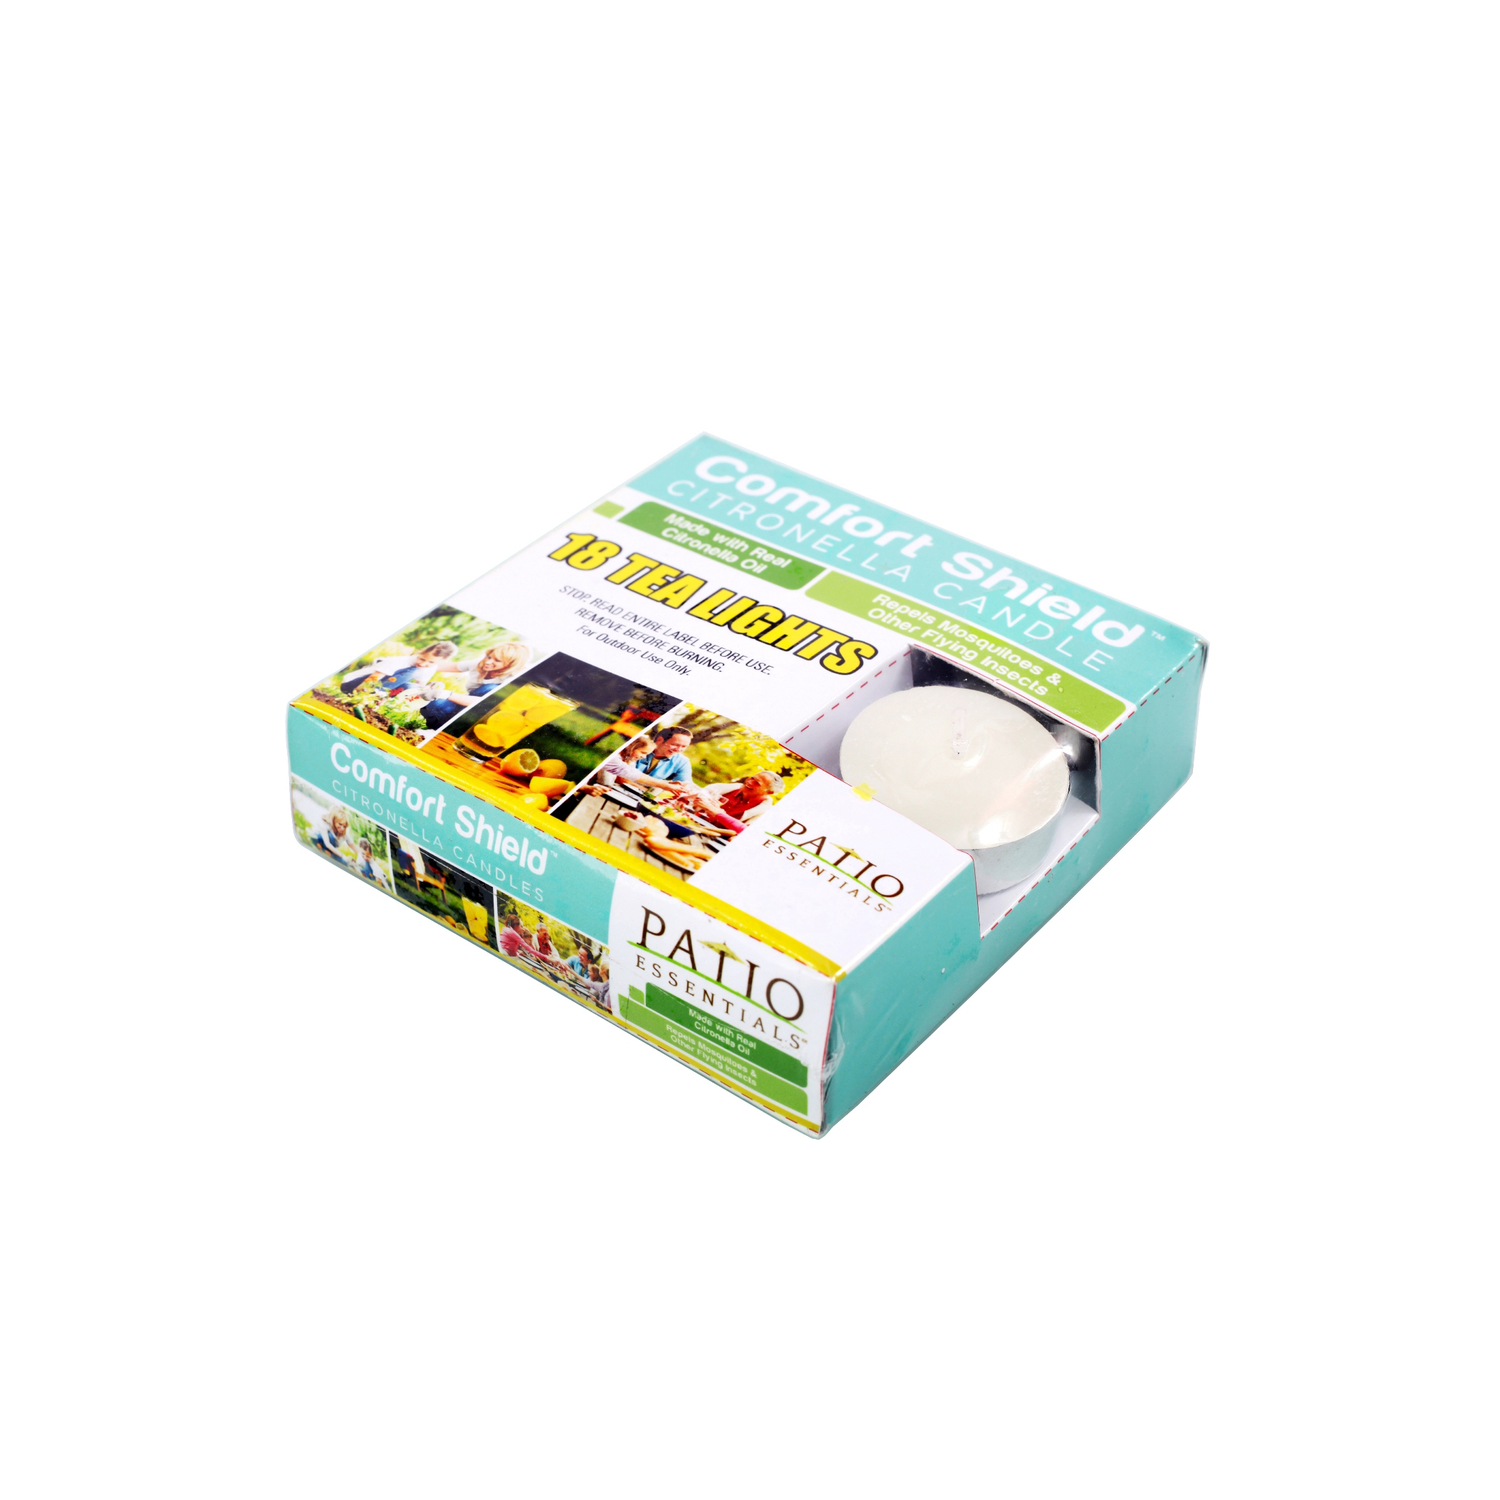 Patio Essentials  Candle  Wax  For Mosquitoes/Other Flying Insects 18 pk